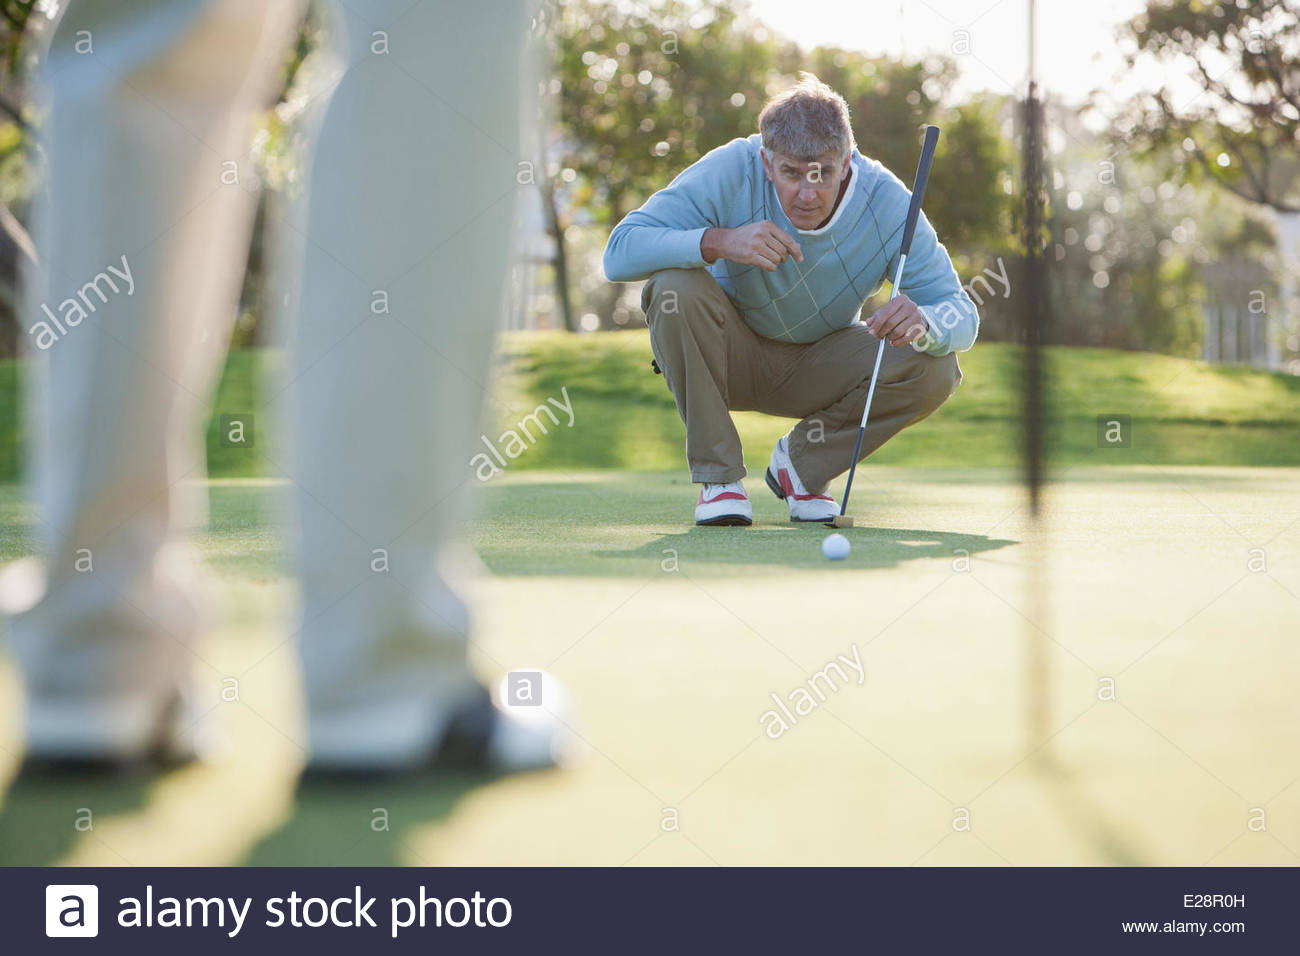 Man assessing play on putting green - Stock Image